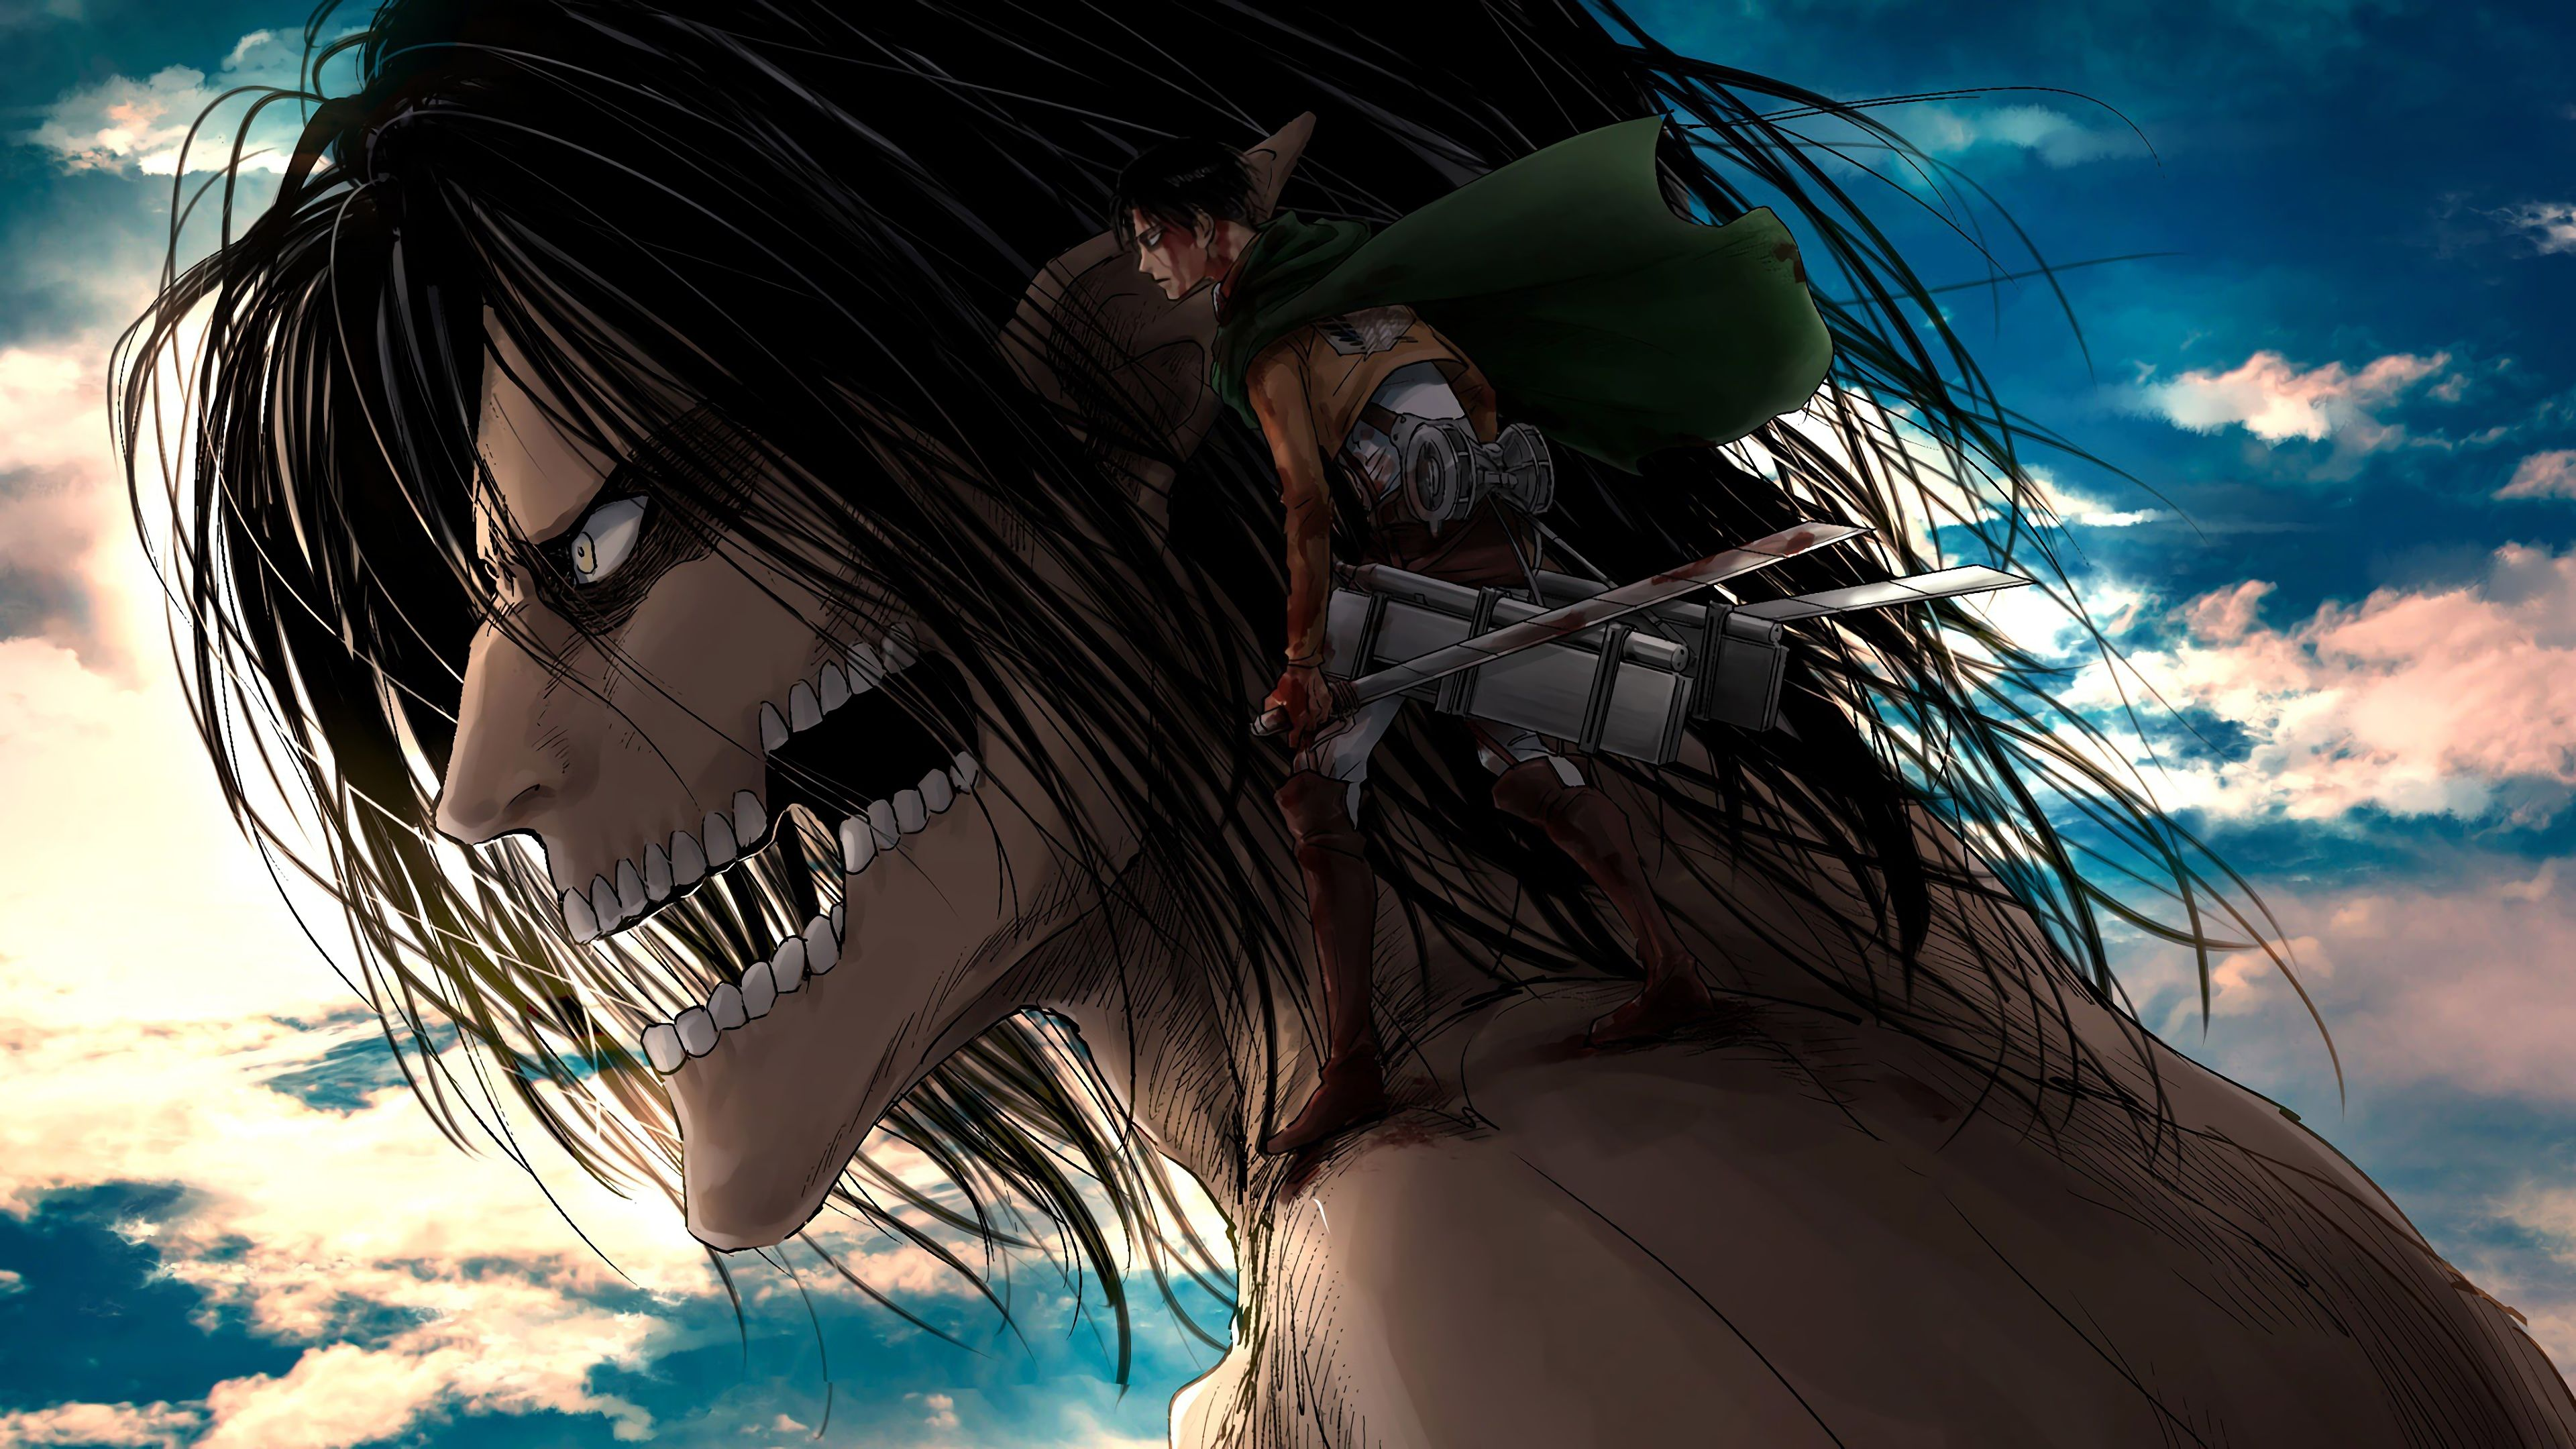 Attack On Titan Anime 4k Pc Wallpapers Wallpaper Cave